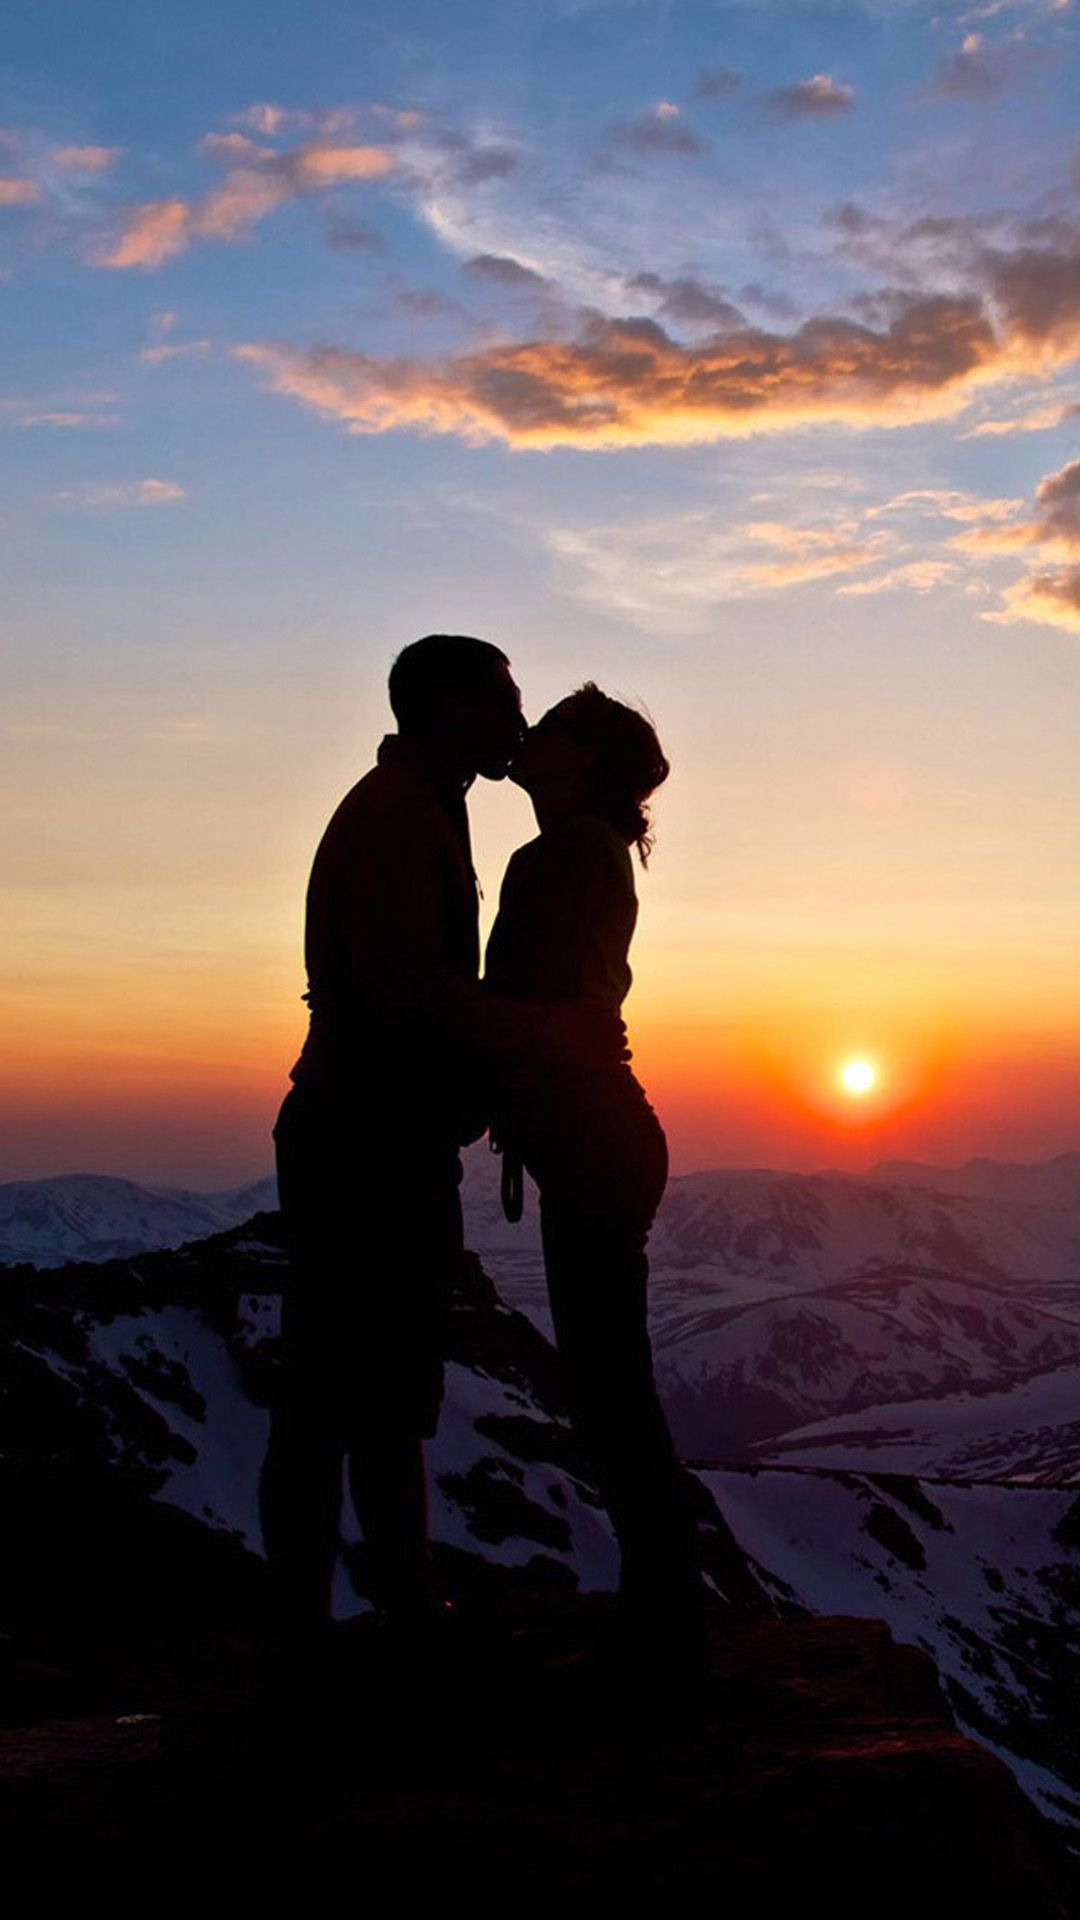 Lover Couple Sunset Snowy Mountain Top Outlines Iphone 6 Wallpaper Download Iphone Wallpapers Ipa Love Couple Wallpaper Background Pictures Sunset Wallpaper Couple love wallpaper hd for mobile